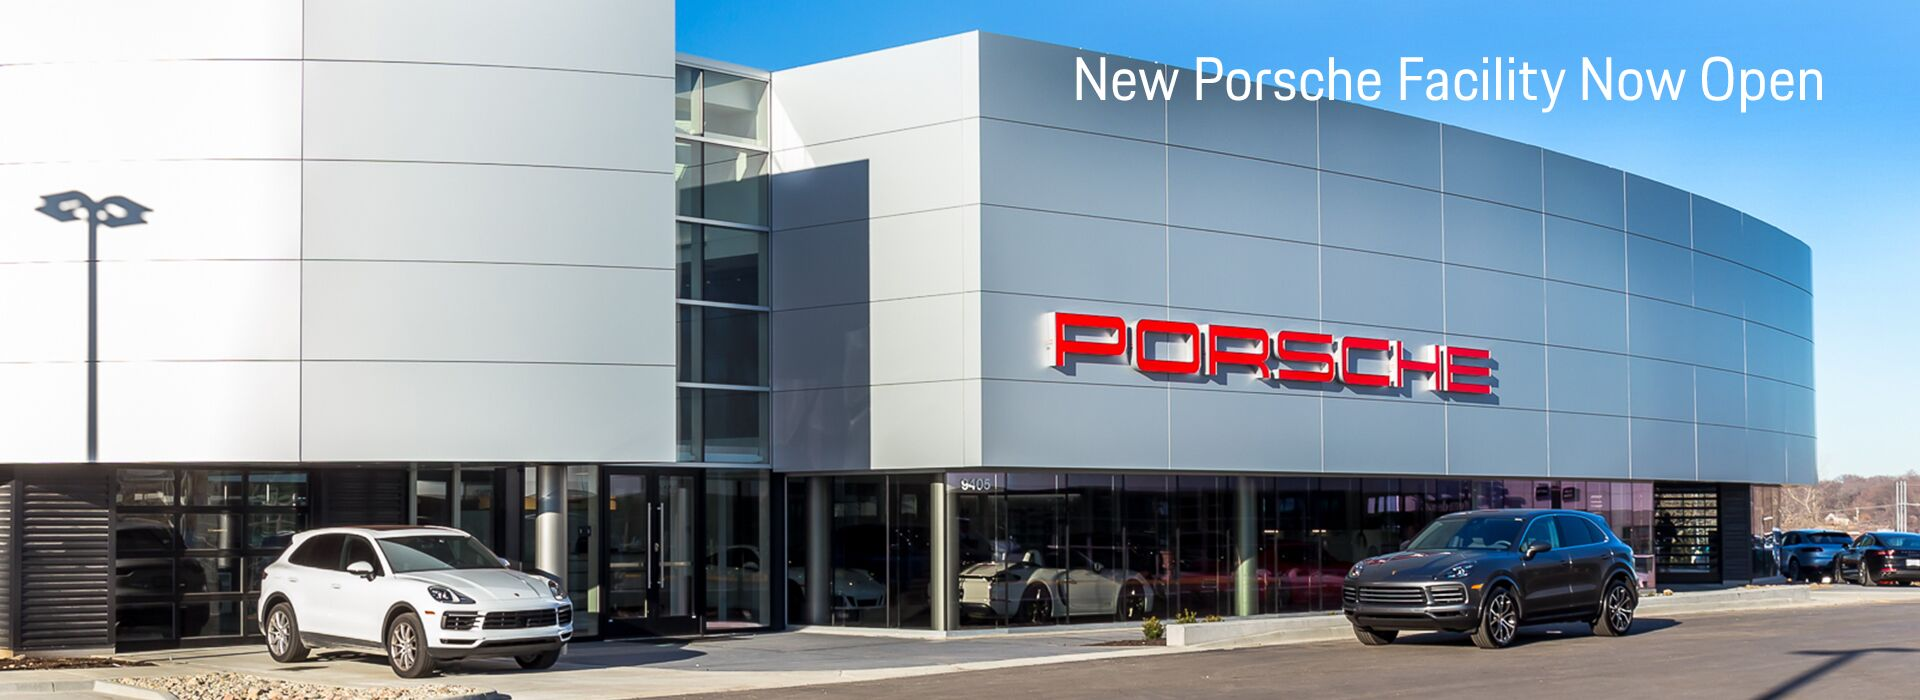 Porsche Dealership Kansas City Ks Used Cars Porsche Kansas City